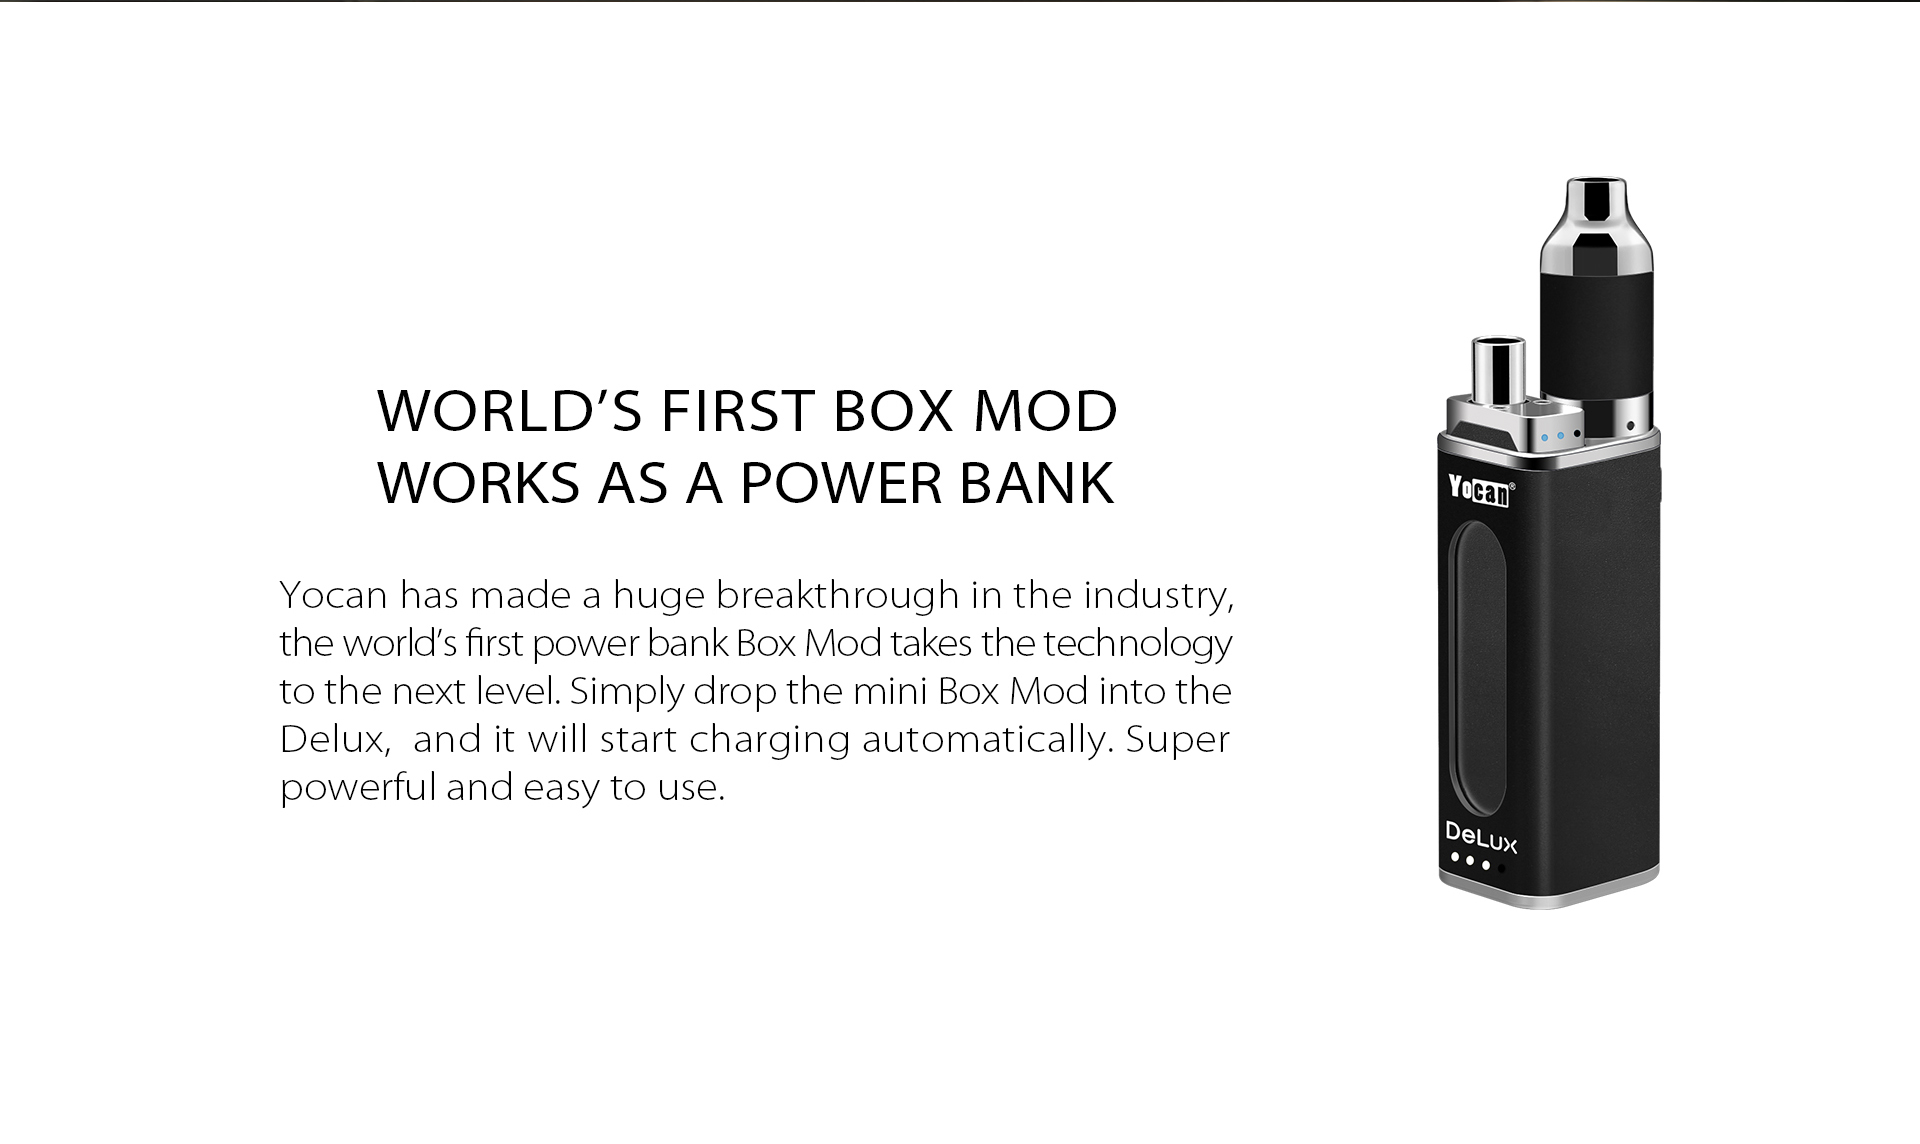 Yocan DeLux is the world's first box mod works as a power bank.